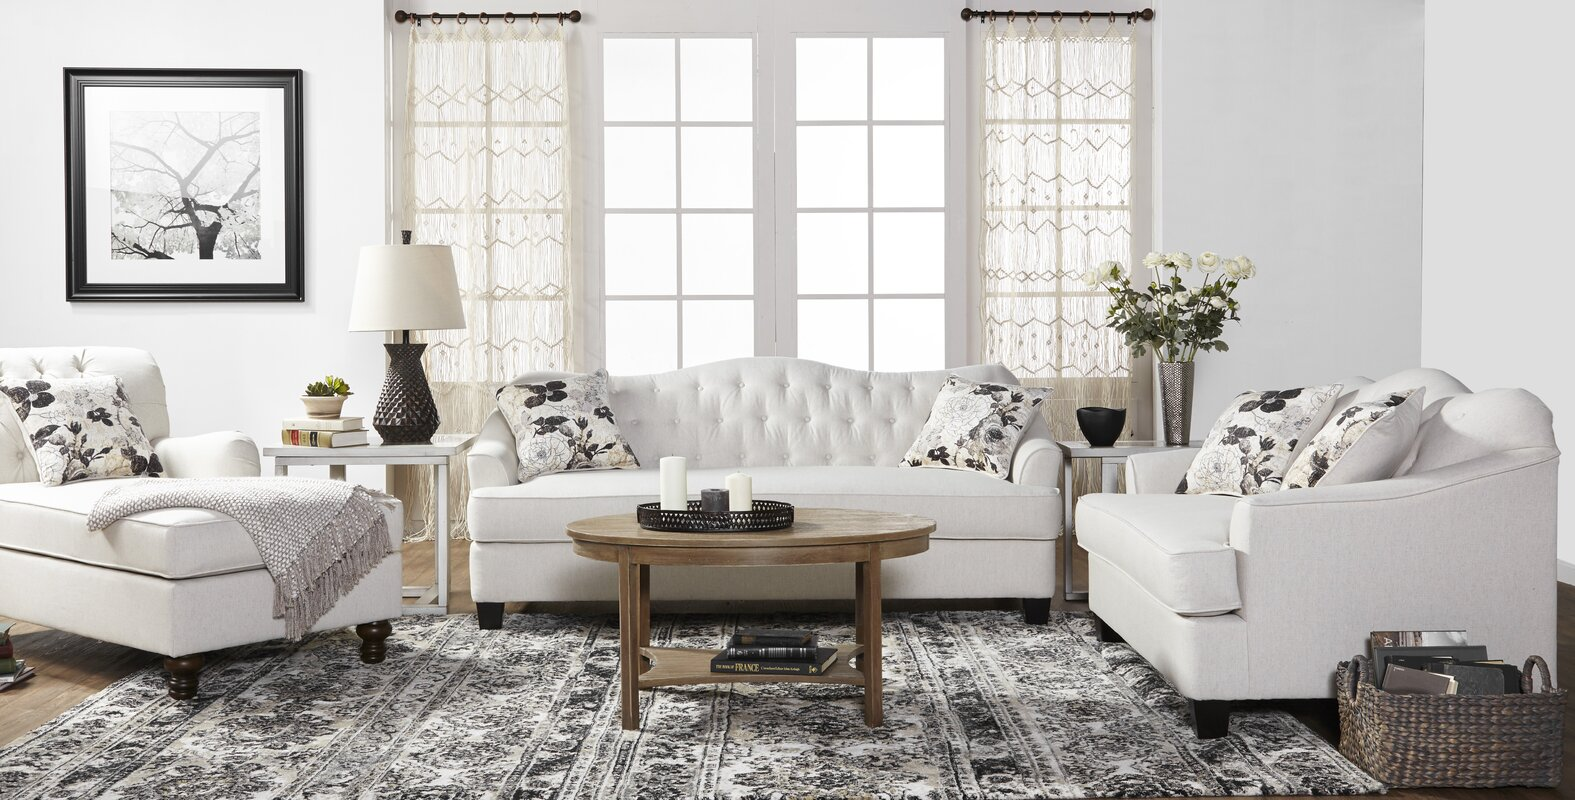 $2529.97 New Britain 3 Piece Living Room Set - dealepic